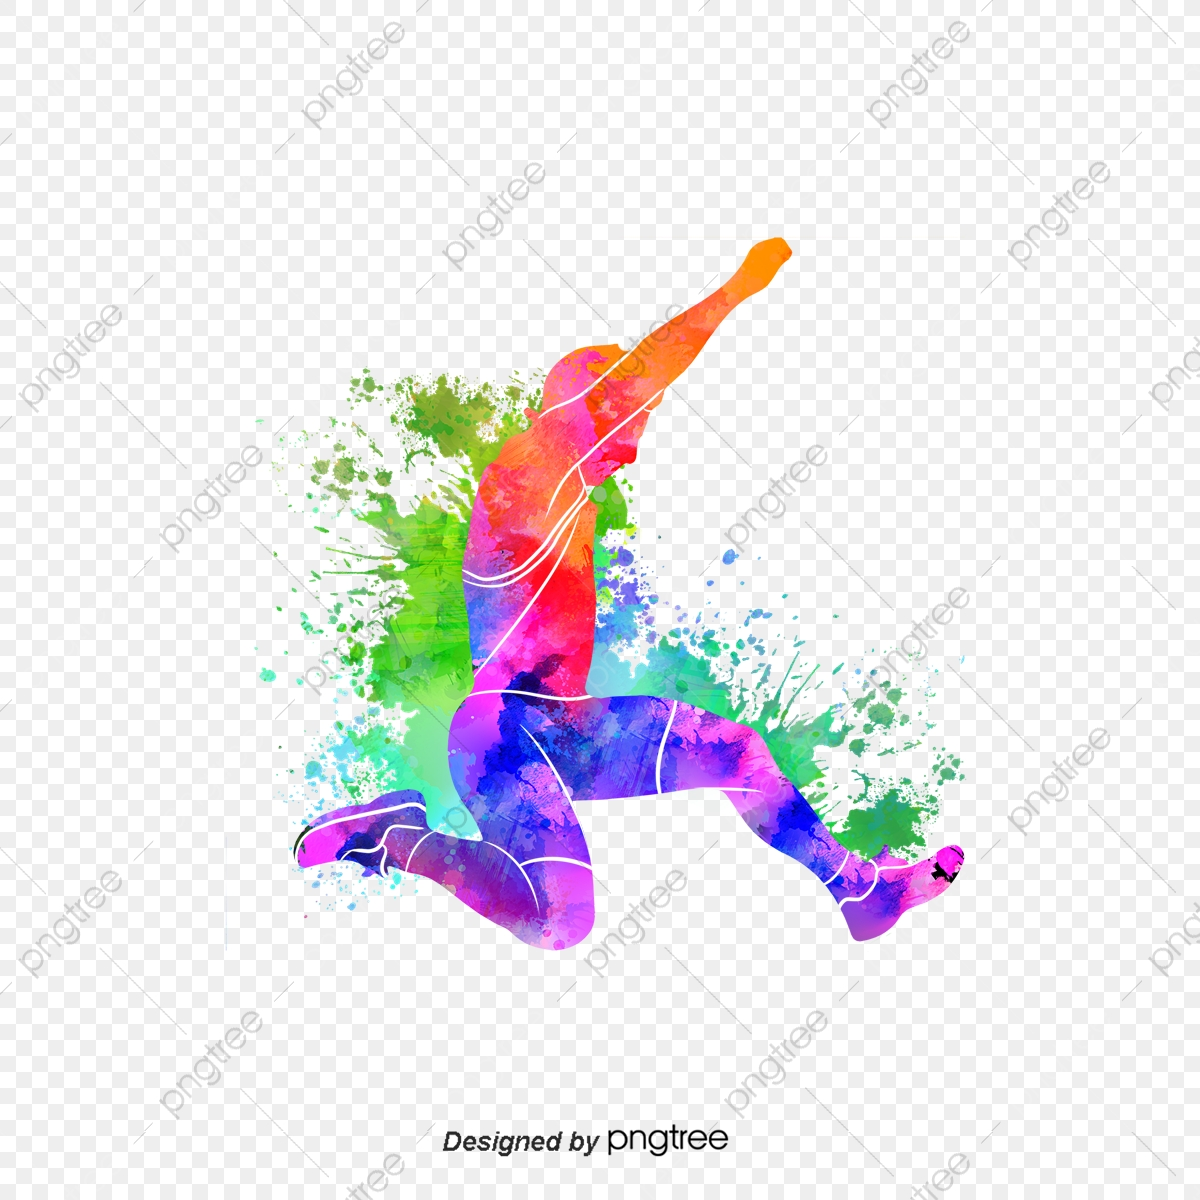 Jump clipart long jumper. Silhouettes of creative colorful